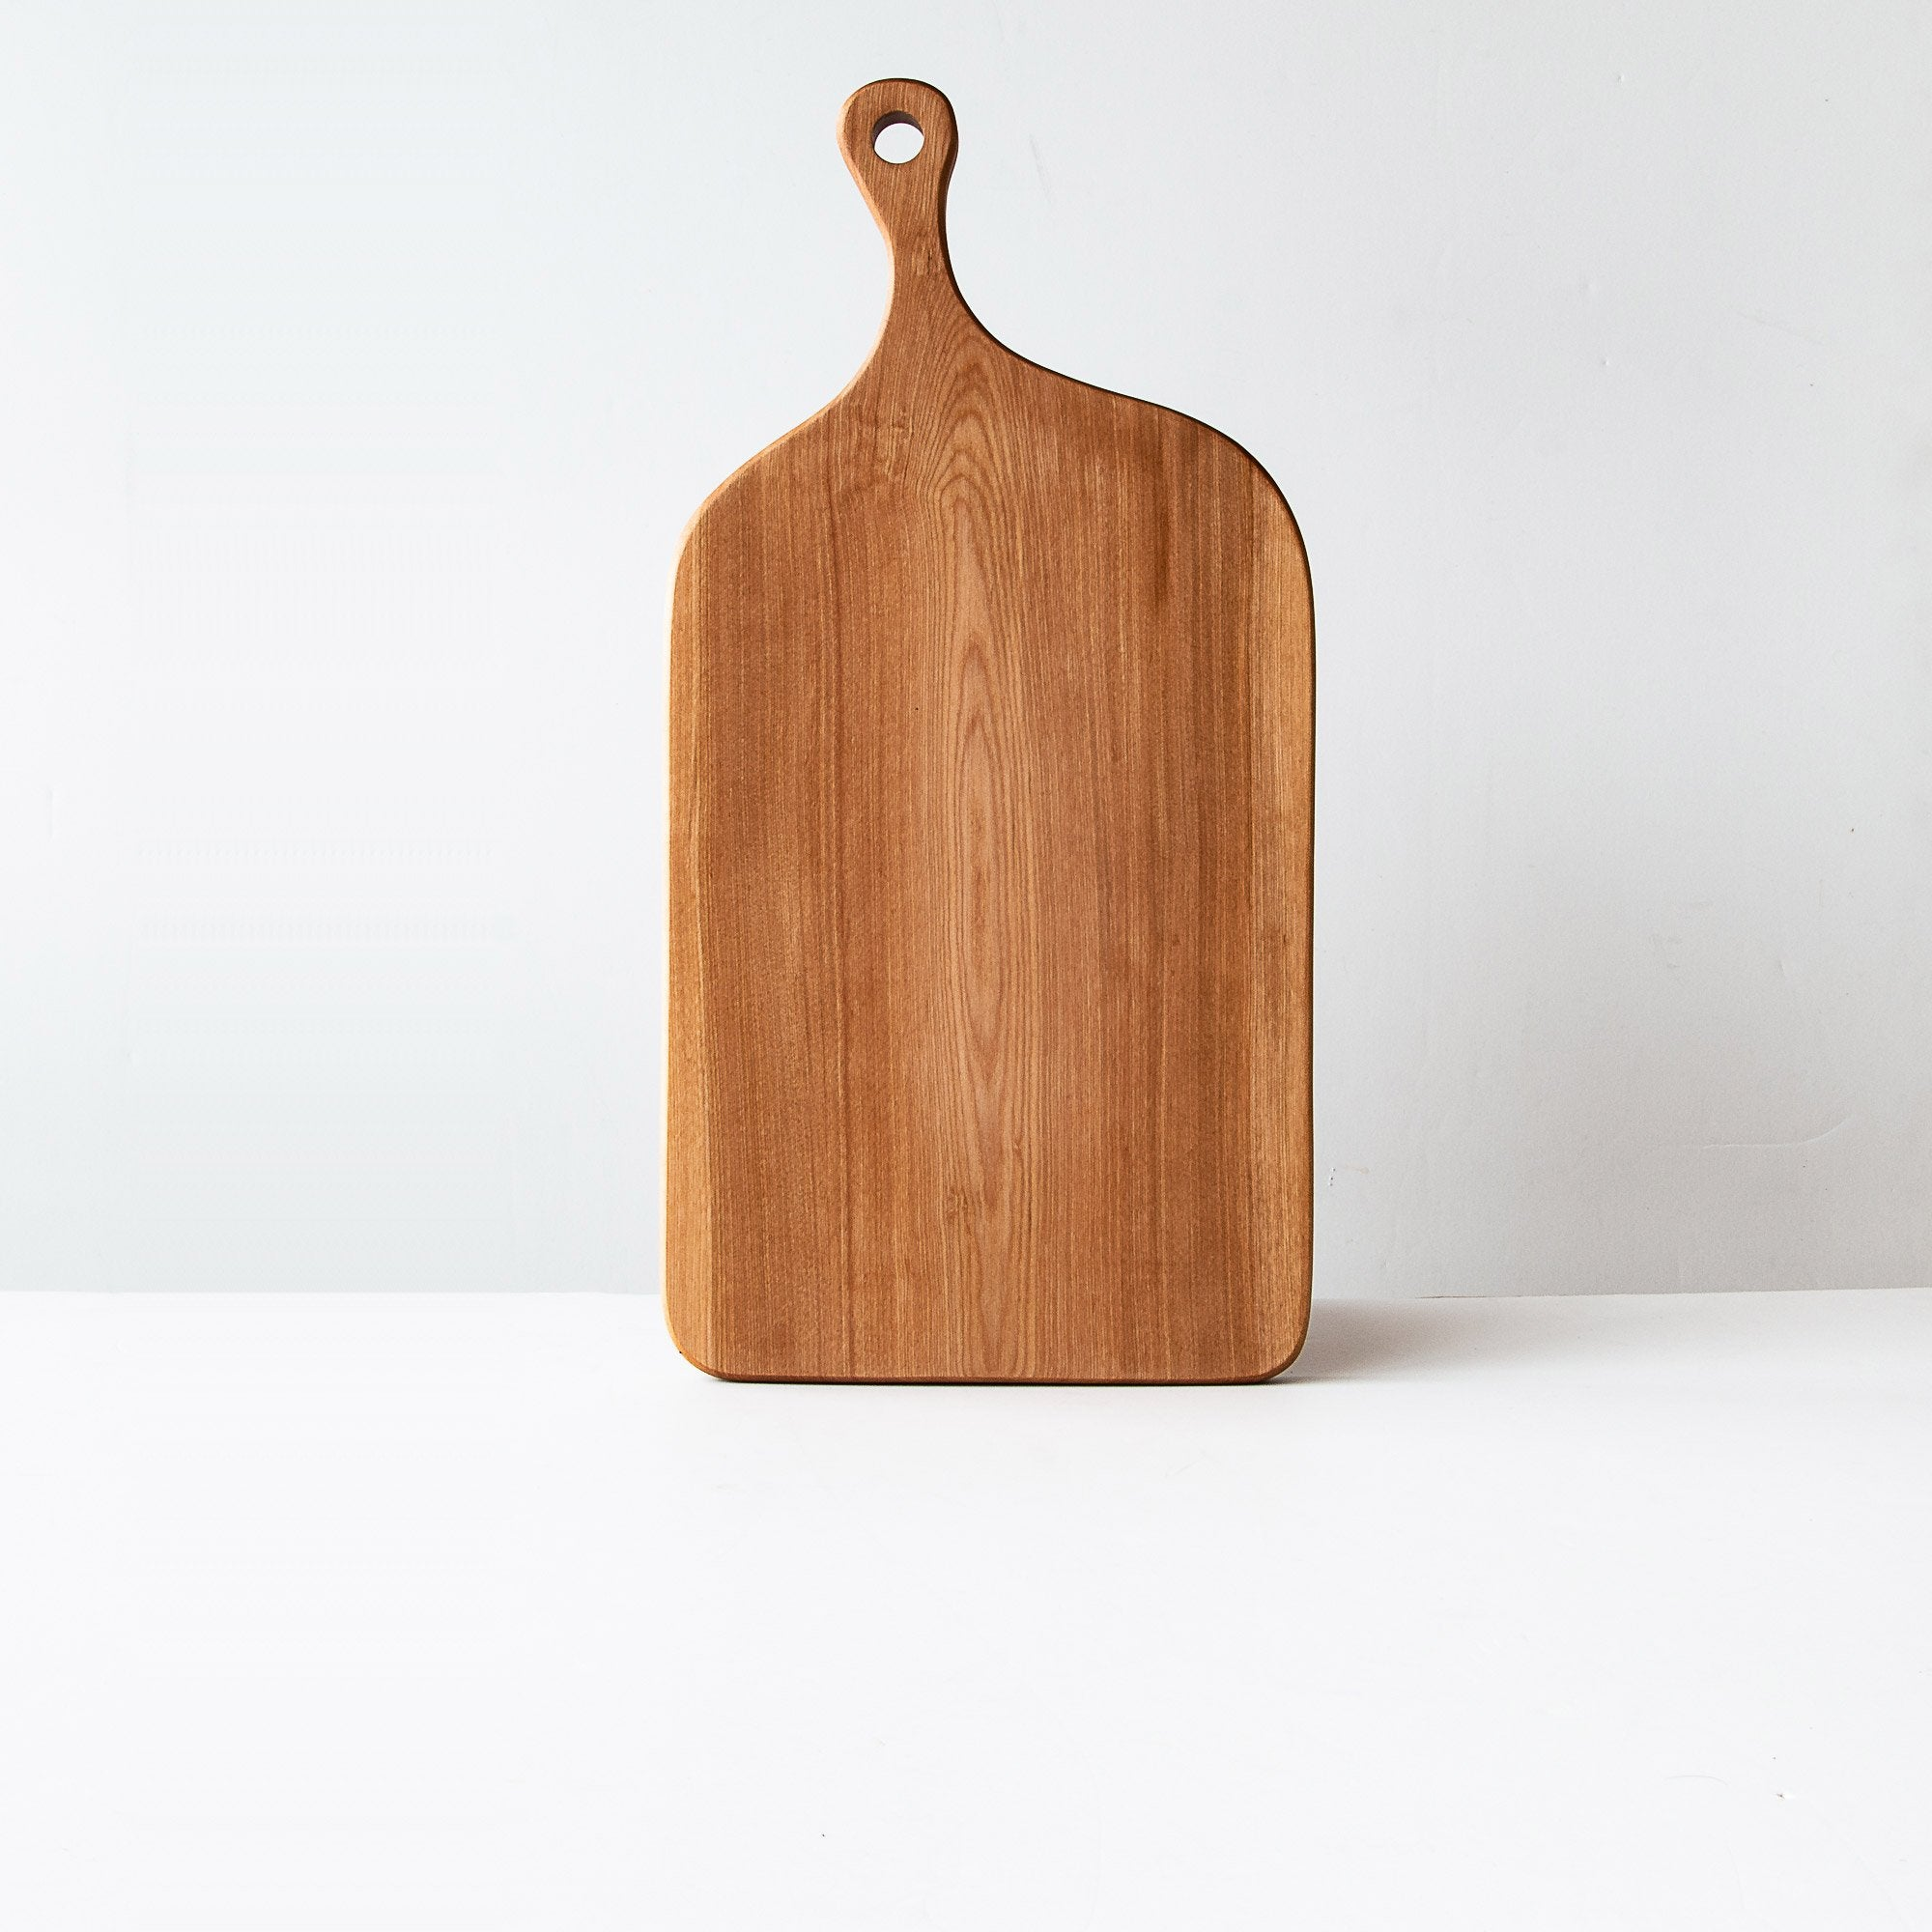 Muskoka N°5 - Large Handmade Serving Board in Birch - Sold by Chic & Basta